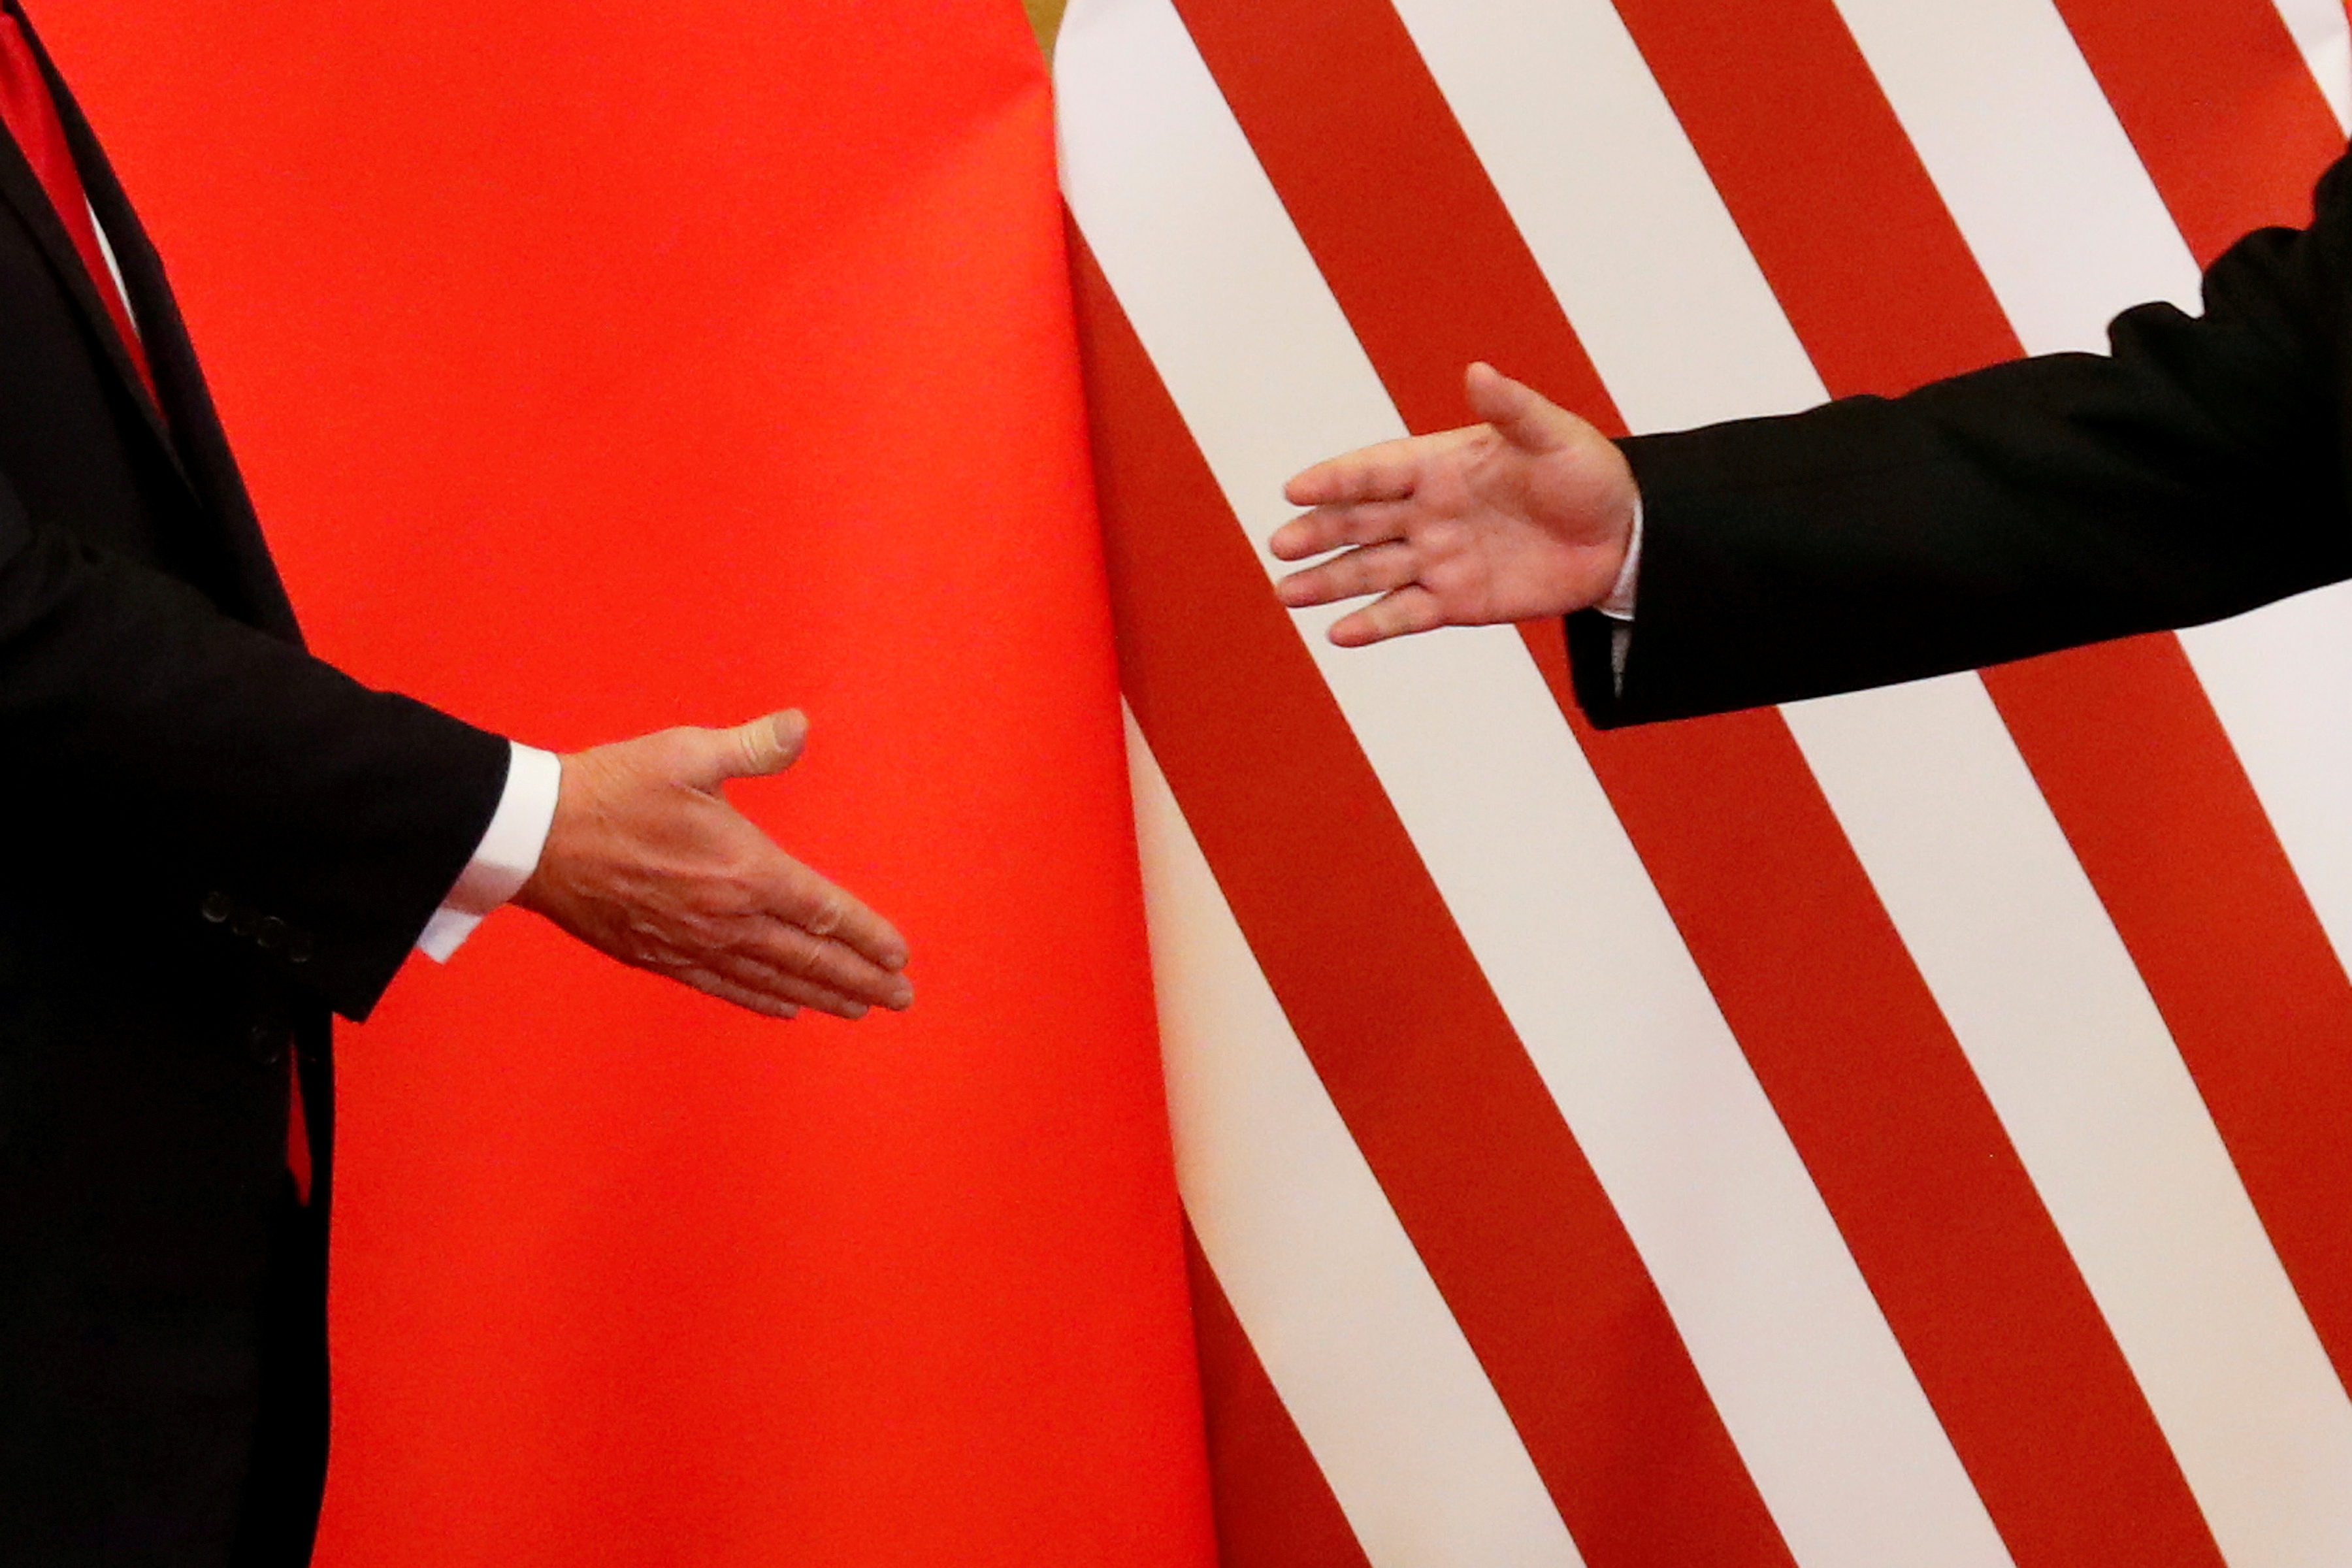 """U.S. President Donald Trump and China's President Xi Jinping shake hands after making joint statements at the Great Hall of the People in Beijing, China, November 9, 2017. Damir Sagolj: """"It's one of those """"how to make a better or at least different shot when two presidents shake hands several times a day, several days in row"""". If I'm not mistaken in calculation, presidents Xi Jinping of China and Donald Trump of the U.S. shook their hands at least six times in events I covered during Trump's recent visit to China. I would imagine there were some more handshakes I haven't seen but other photographers did. And they all look similar - two big men, smiling and heartily greeting each other until everyone gets their shot. But then there is always something that can make it special - in this case the background made of U.S. and Chinese flags. They shook hands twice in front of it, and the first time it didn't work for me. The second time I positioned myself lower and centrally, and used the longest lens I have to capture only hands reaching for a handshake."""" REUTERS/Damir Sagolj/File Photo  SEARCH """"POY TRUMP"""" FOR THIS STORY. SEARCH """"REUTERS POY"""" FOR ALL BEST OF 2017 PACKAGES.    TPX IMAGES OF THE DAY - RC1B1E5EF340"""